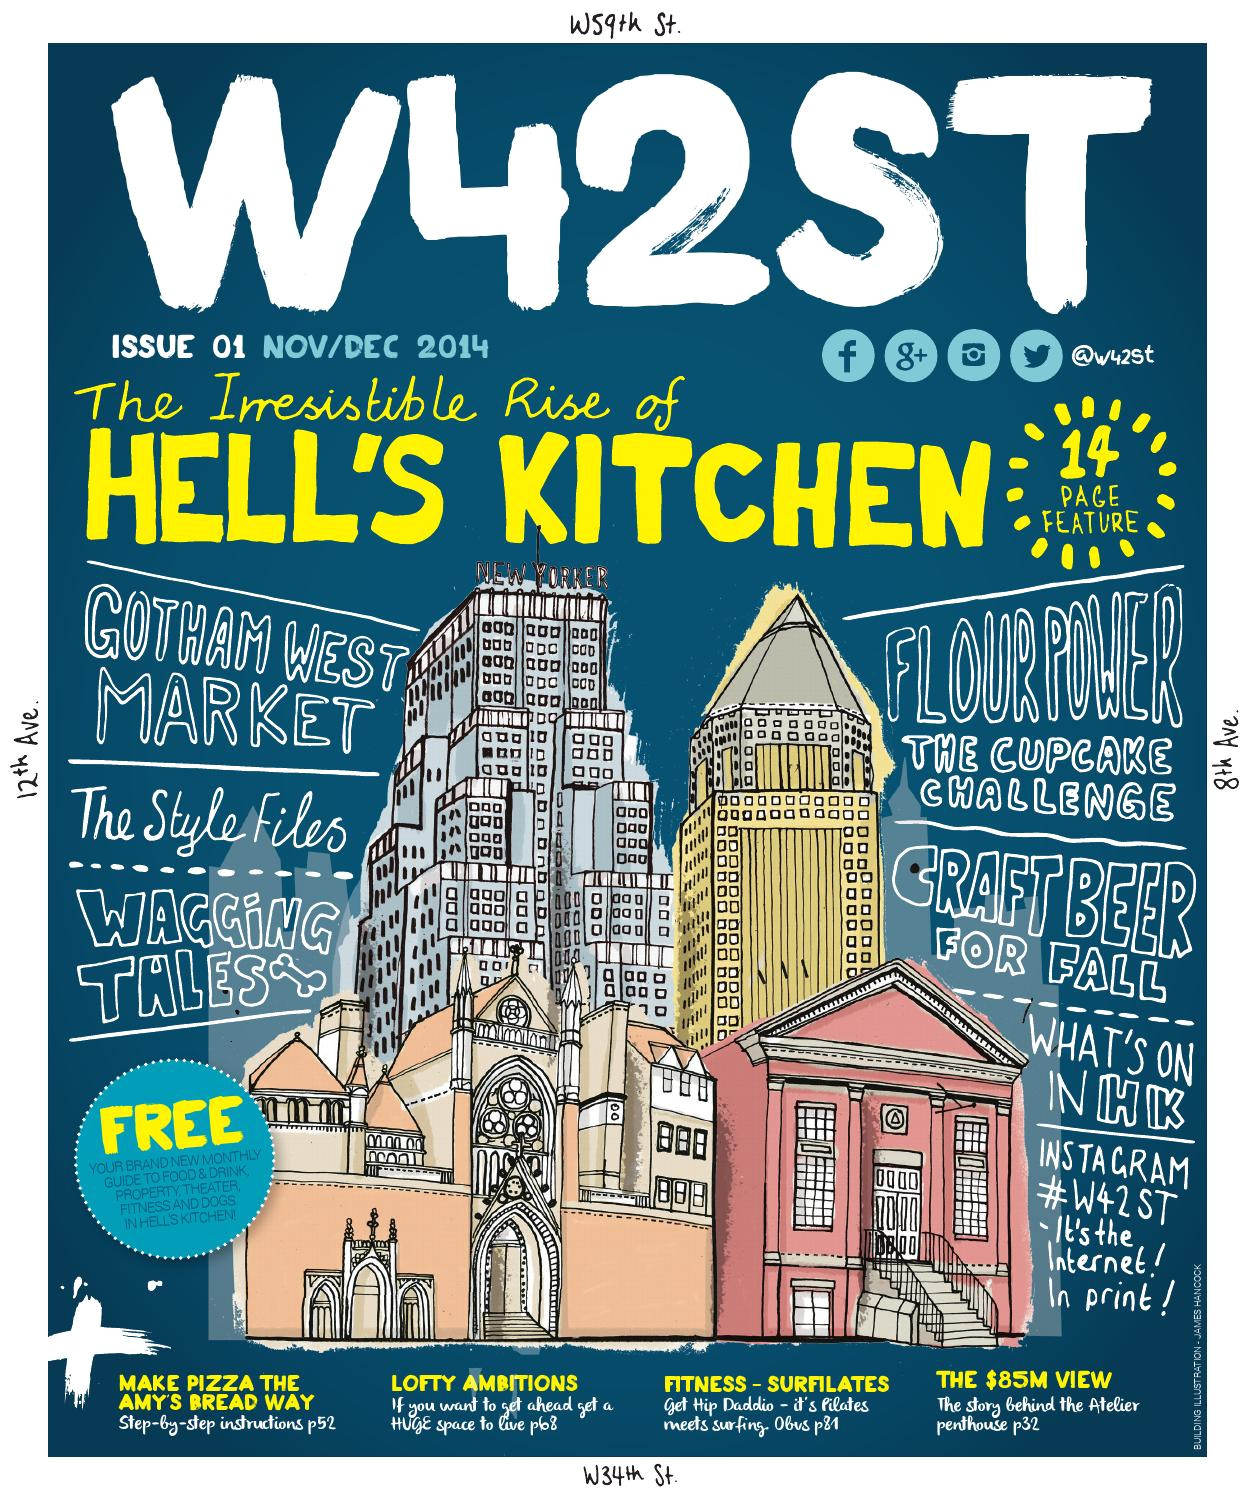 Diamond Brite Pool Finish Problems W42st Magazine issue 1 the Rise Of Hell S Kitchen by W42st